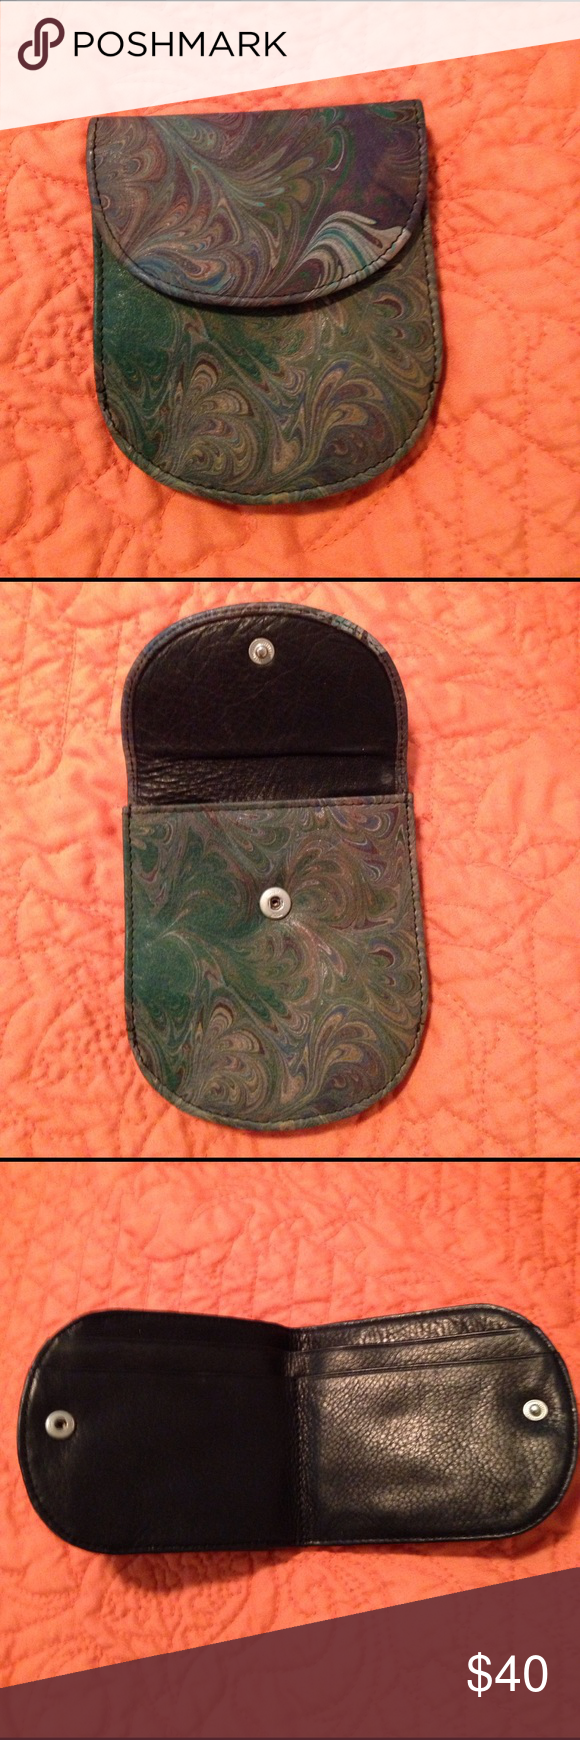 Paisley print leather wallet LIKE NEW paisley print leather wallet. Bags Wallets